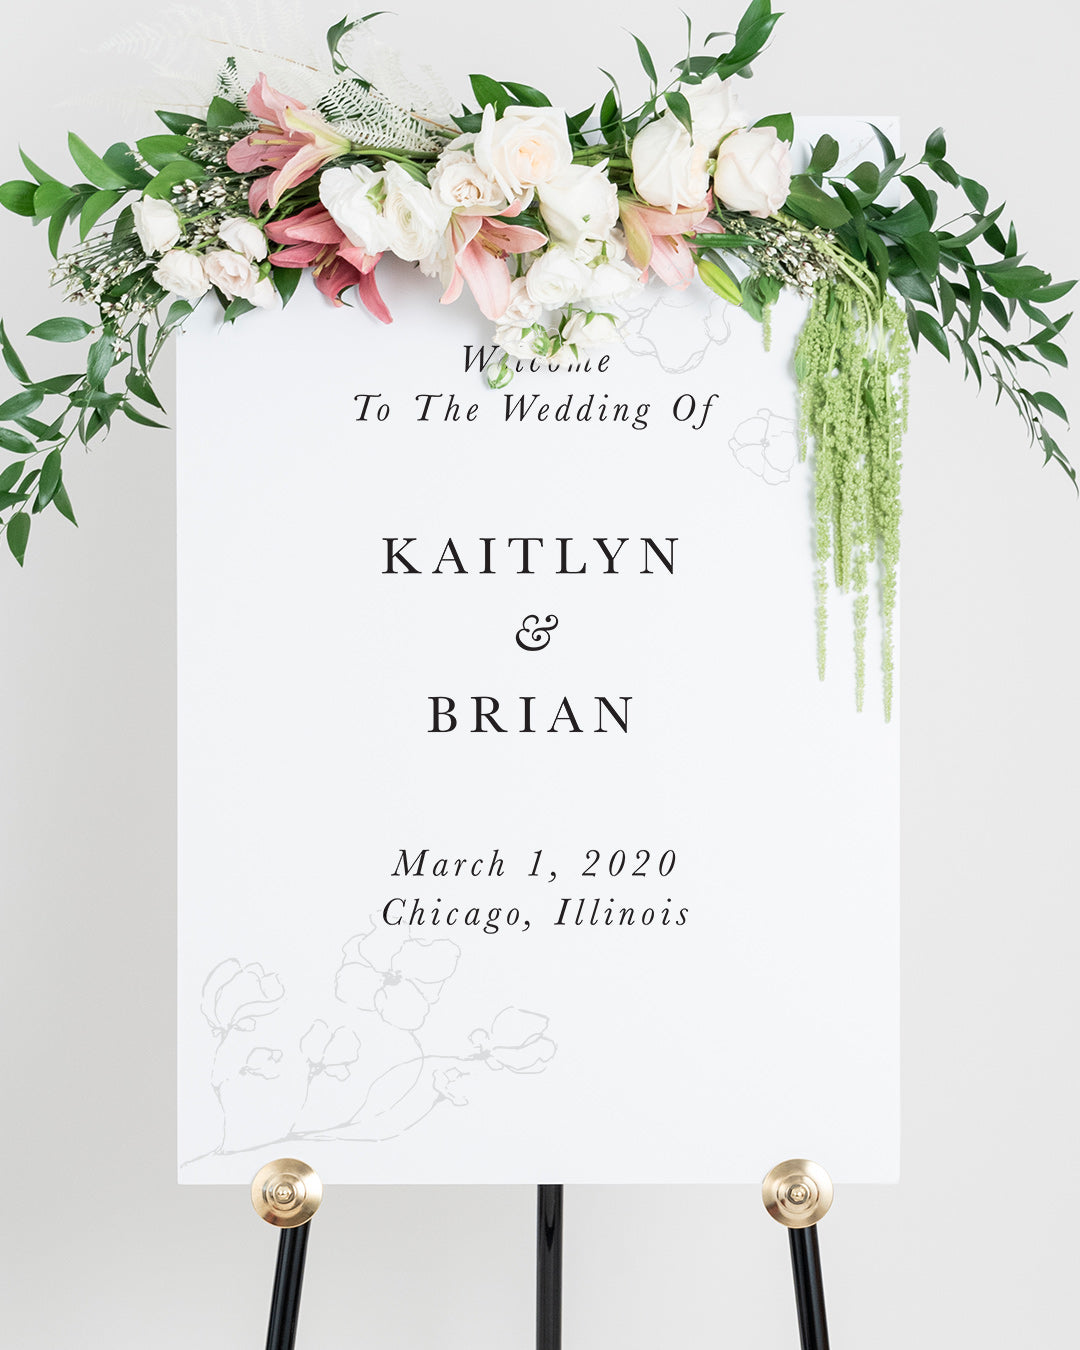 Wedding Welcome Sign With Flowers | The Kaitlyn